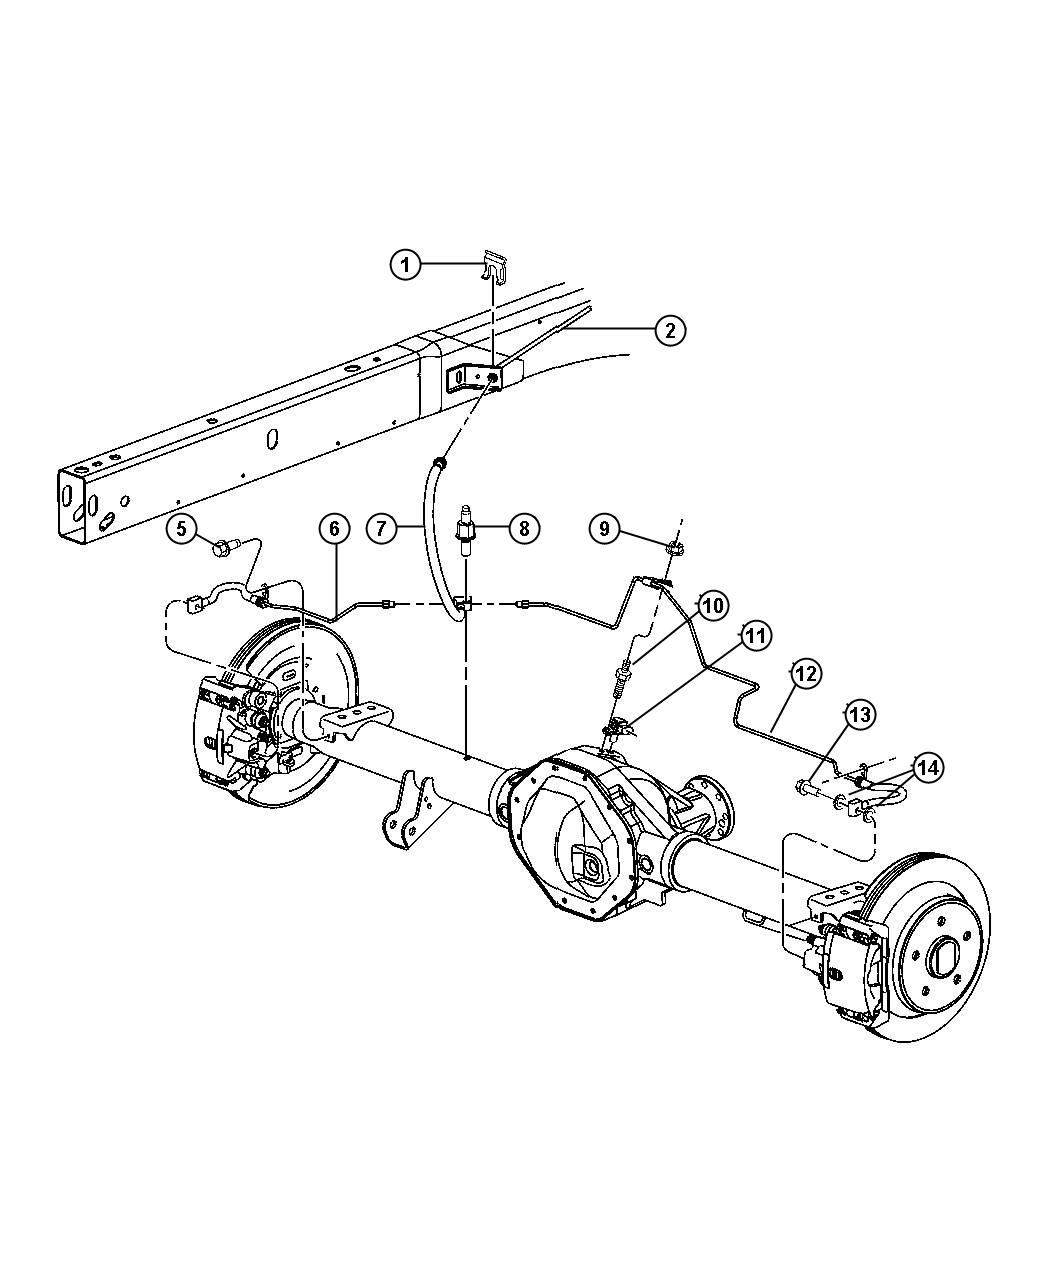 Dodge Ram Used For Tube And Hose Brake Right